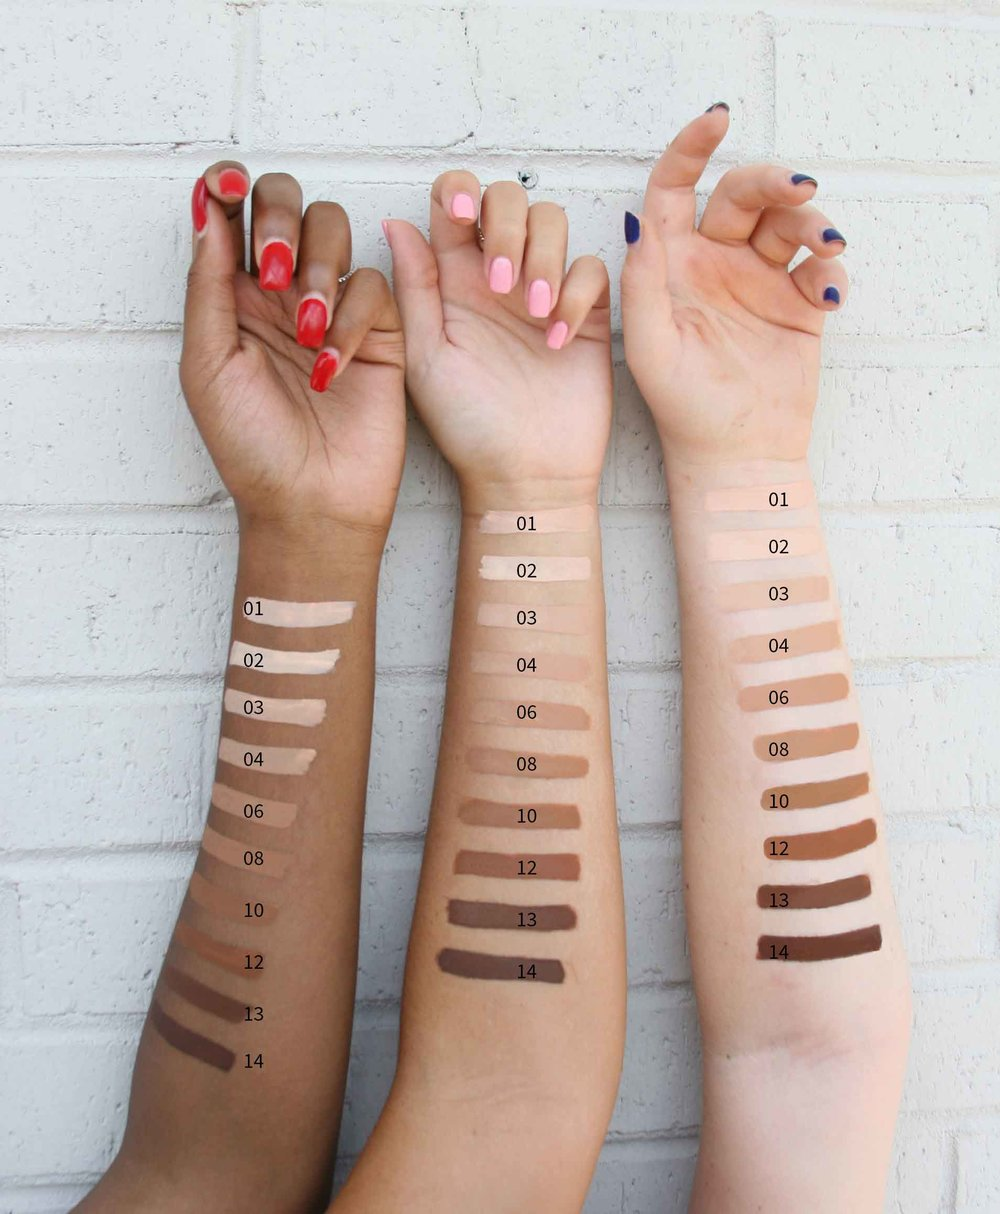 conceal-swatches-arms-1-2-1.jpg